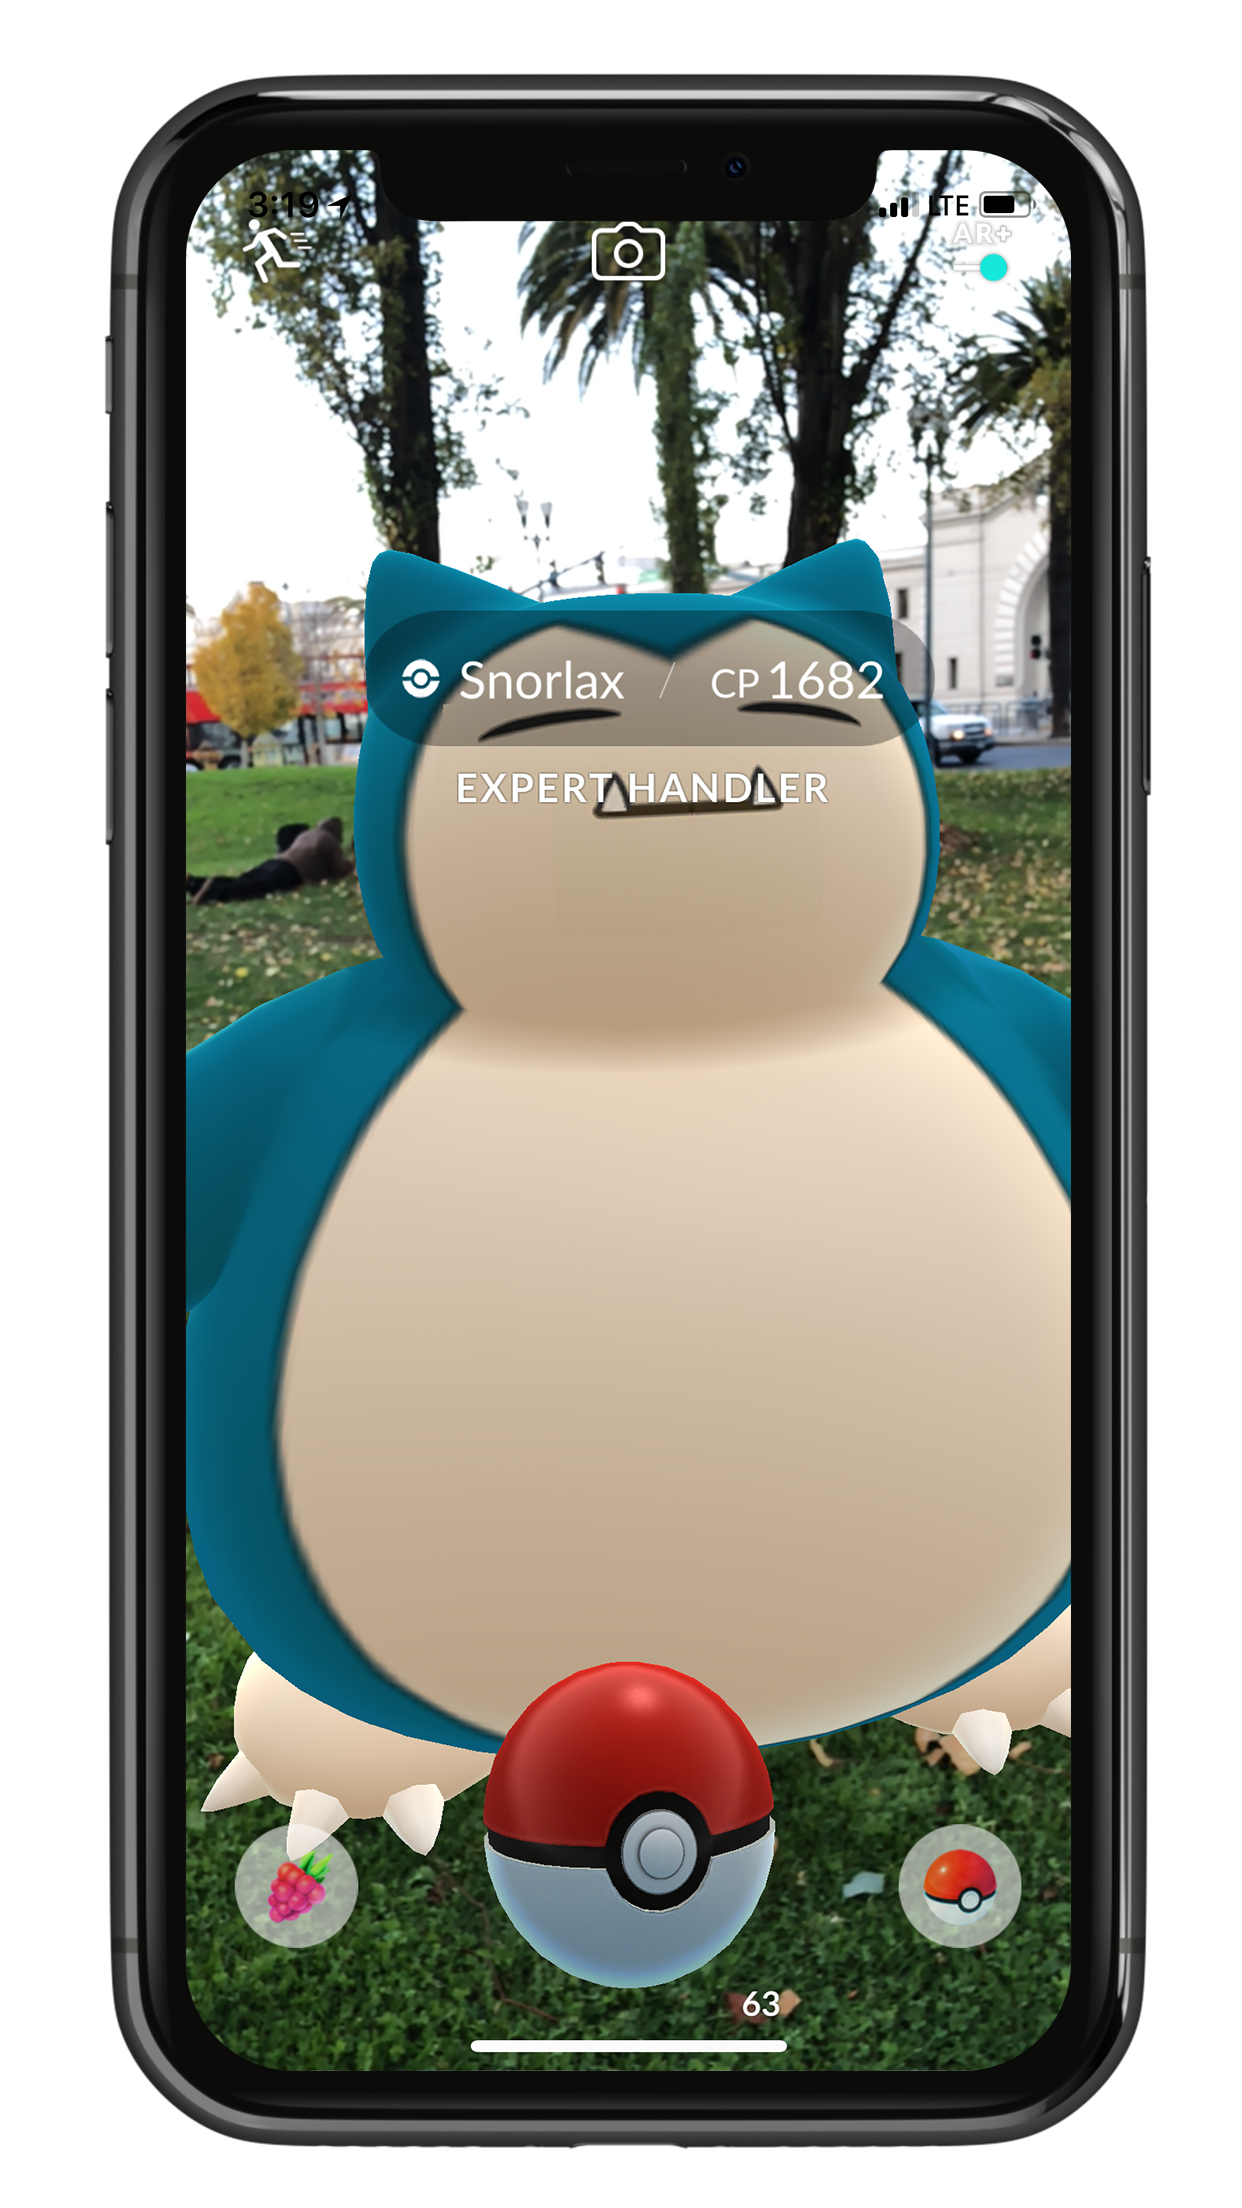 A picture of a smartphone playing PokemonGo which allows users to interact with augmented reality based on their location.